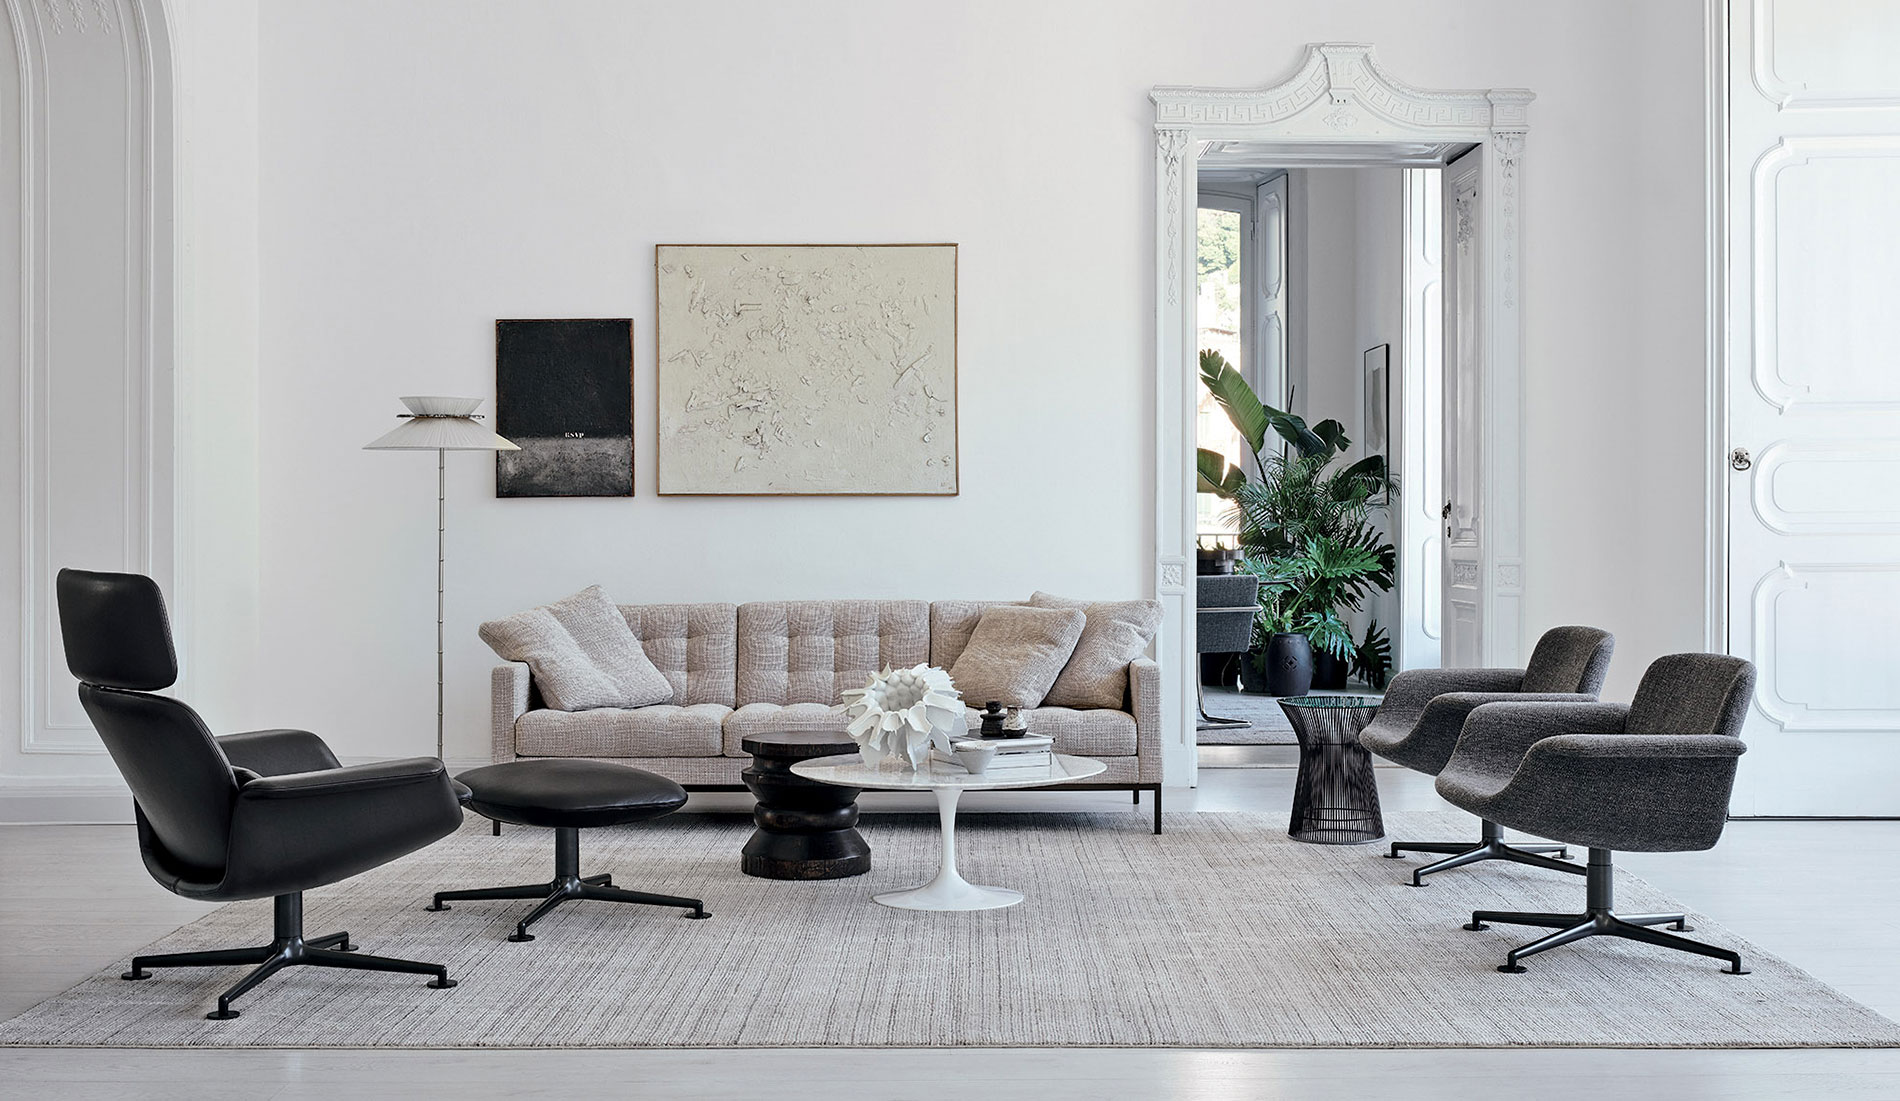 Knoll Living Room with KN Collection and Florence Knoll Relaxed Sofa